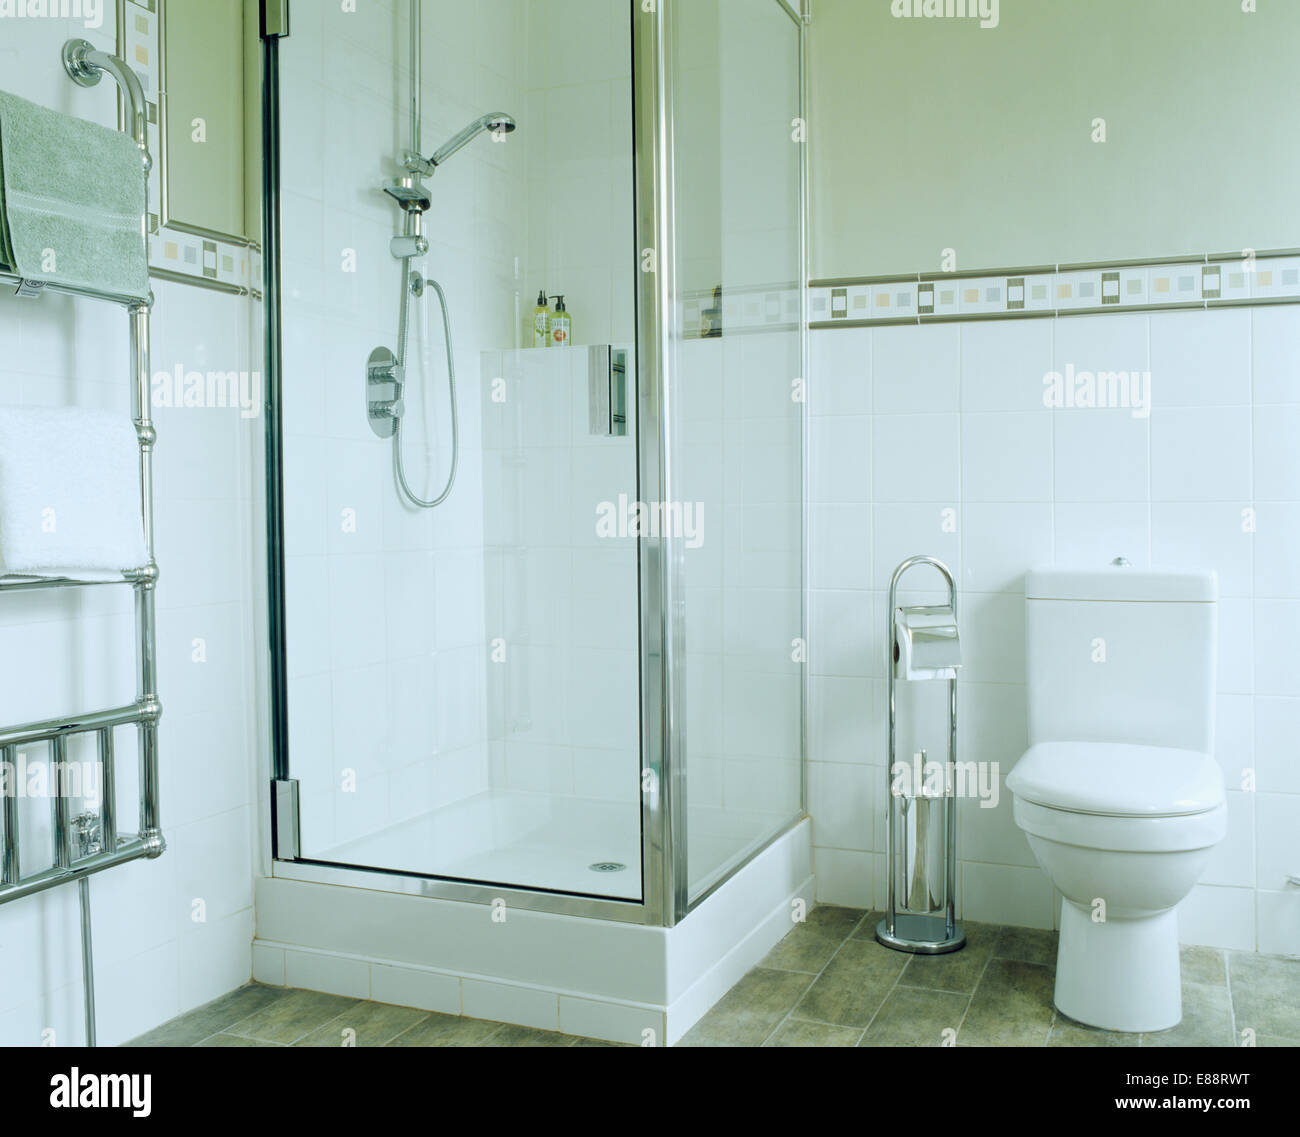 Glass shower cabinet in corner of pale green bathroom with white ...